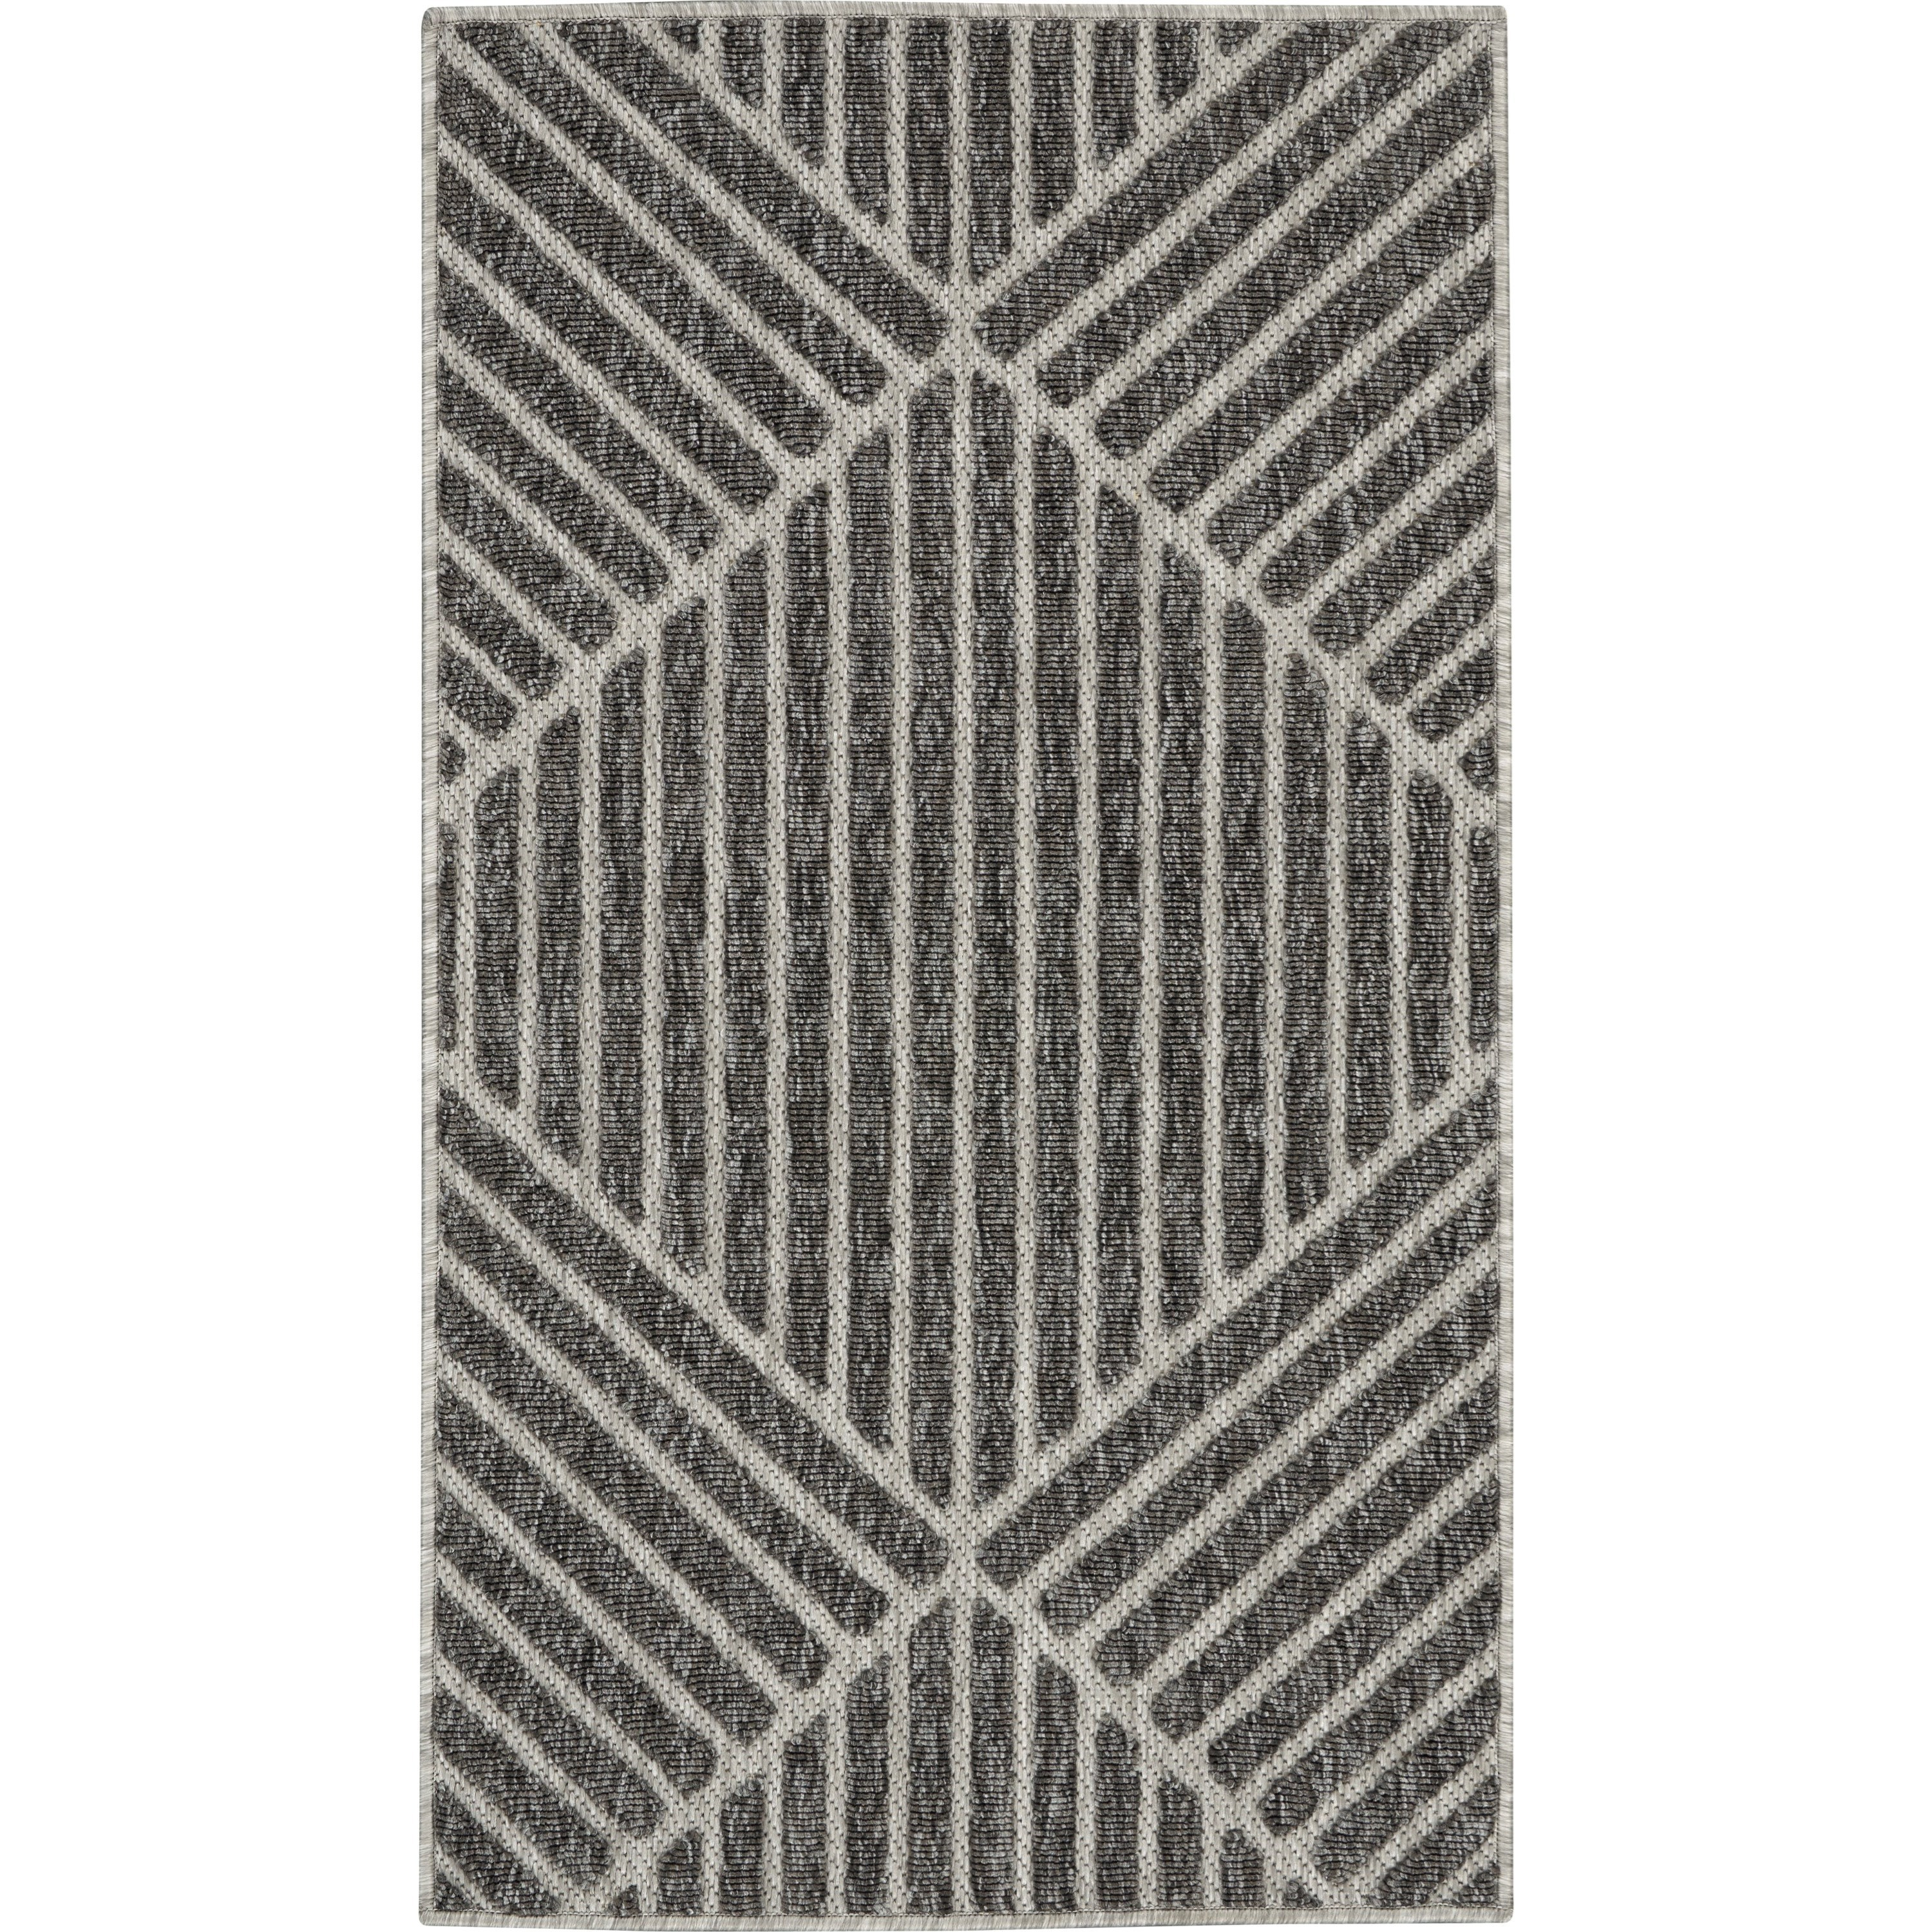 Cozumel 2020 2' x 4' Rug by Nourison at Home Collections Furniture